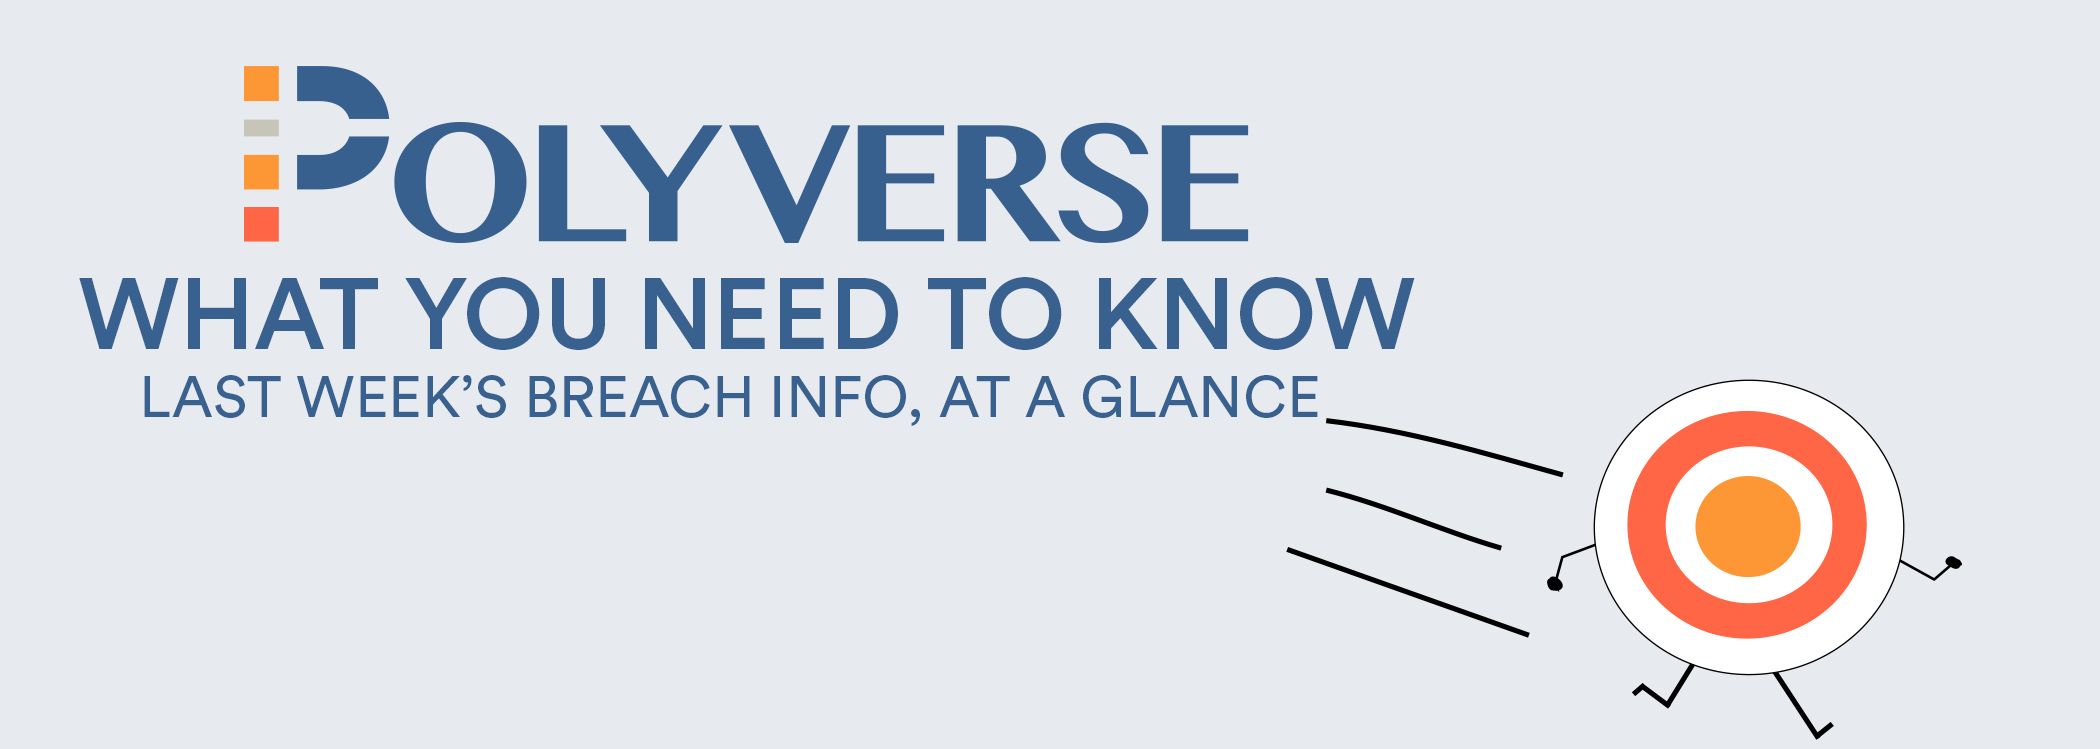 Polyverse Weekly Breach Report - Polyverse Corporation